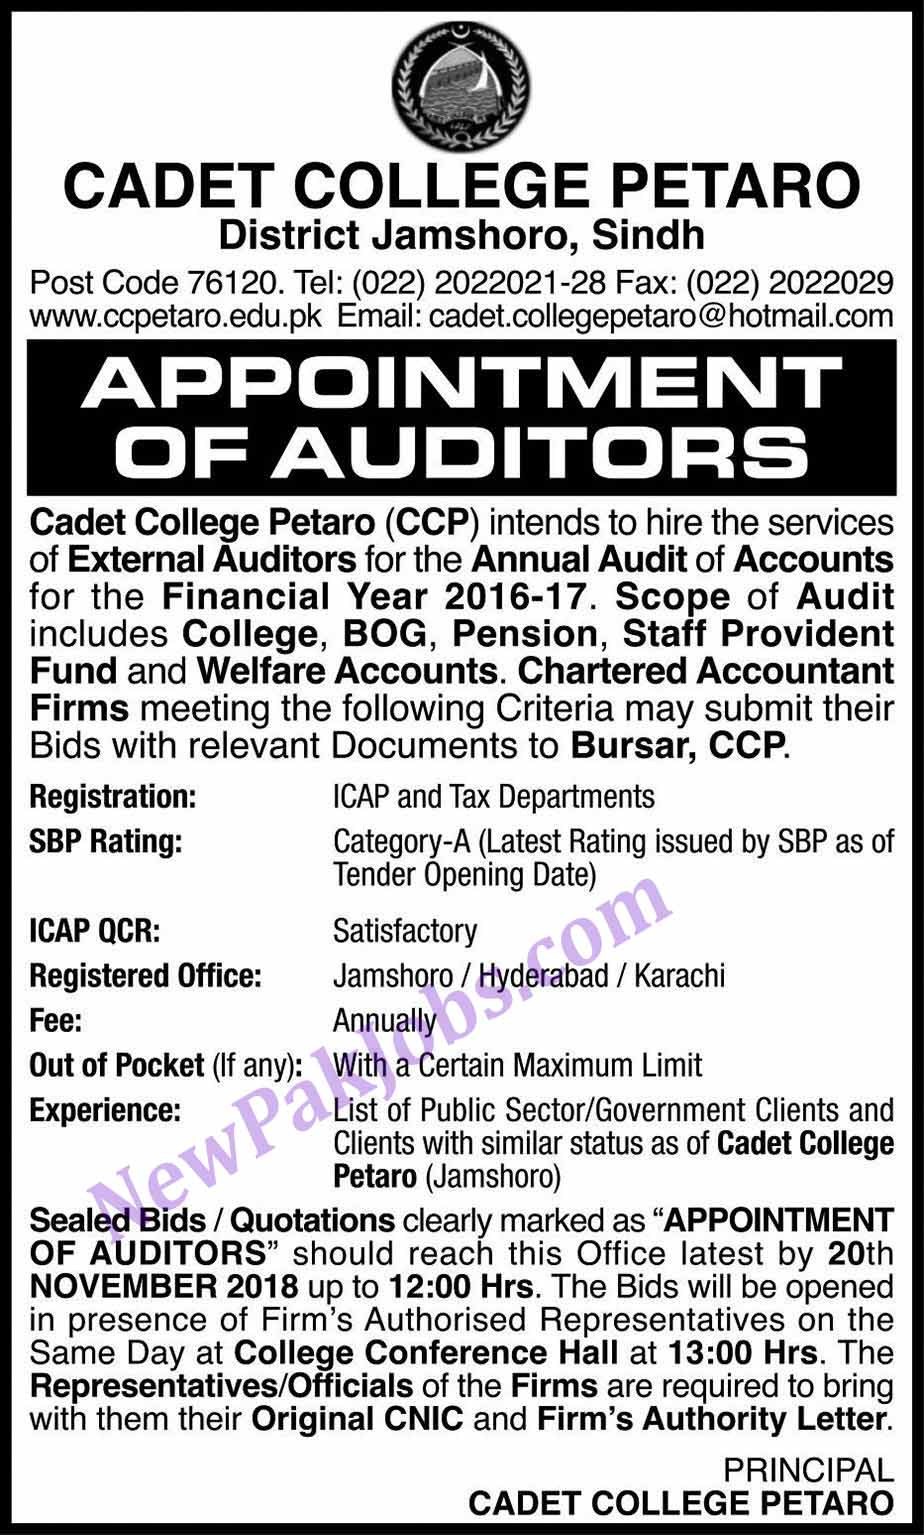 External Auditor Jobs in Cadet College Petaro District Jamshoro Sindh